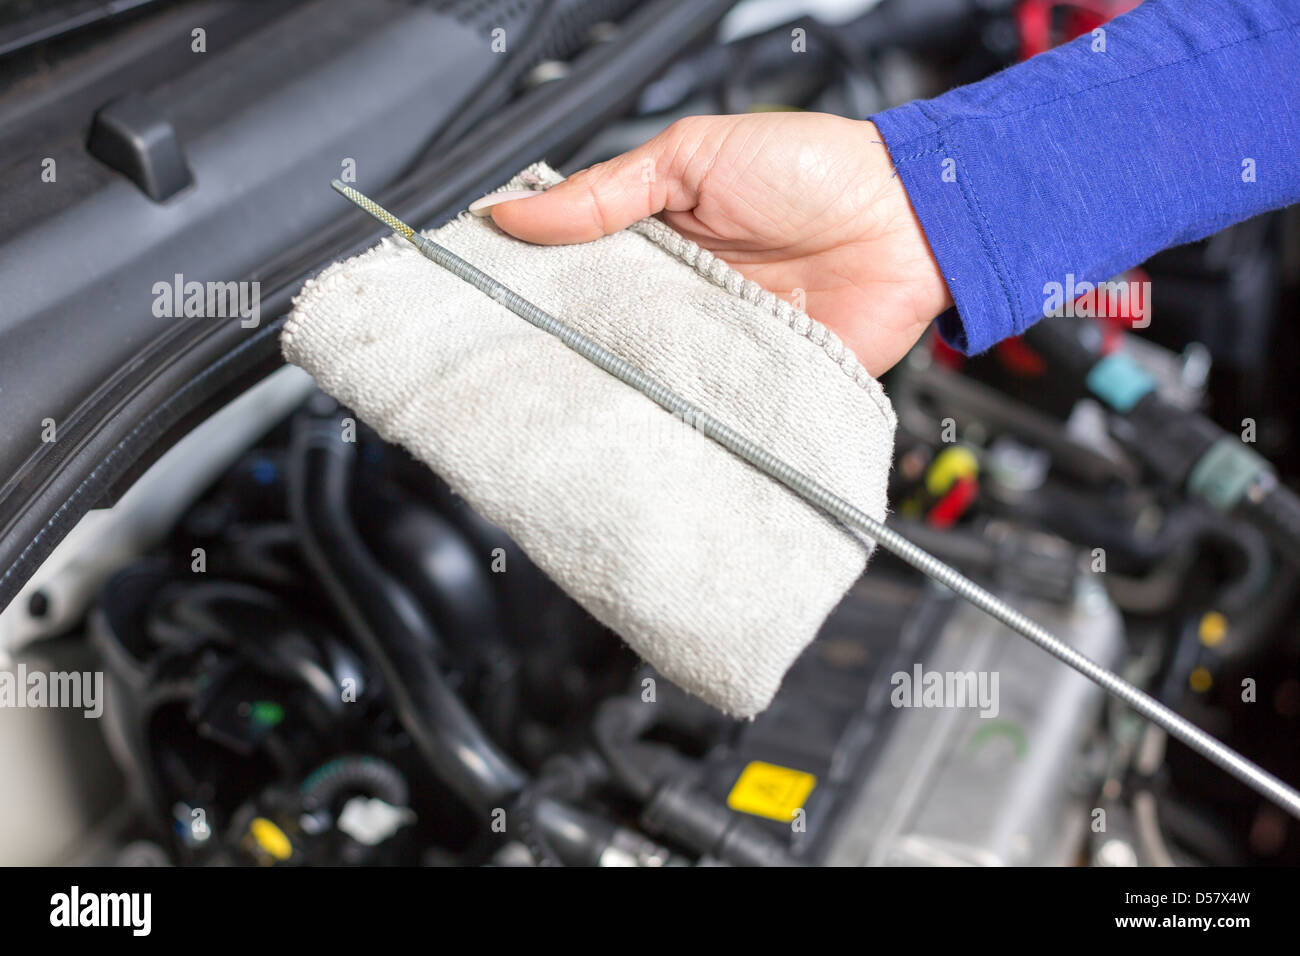 Car mechanic checking the oil of a car - Stock Image